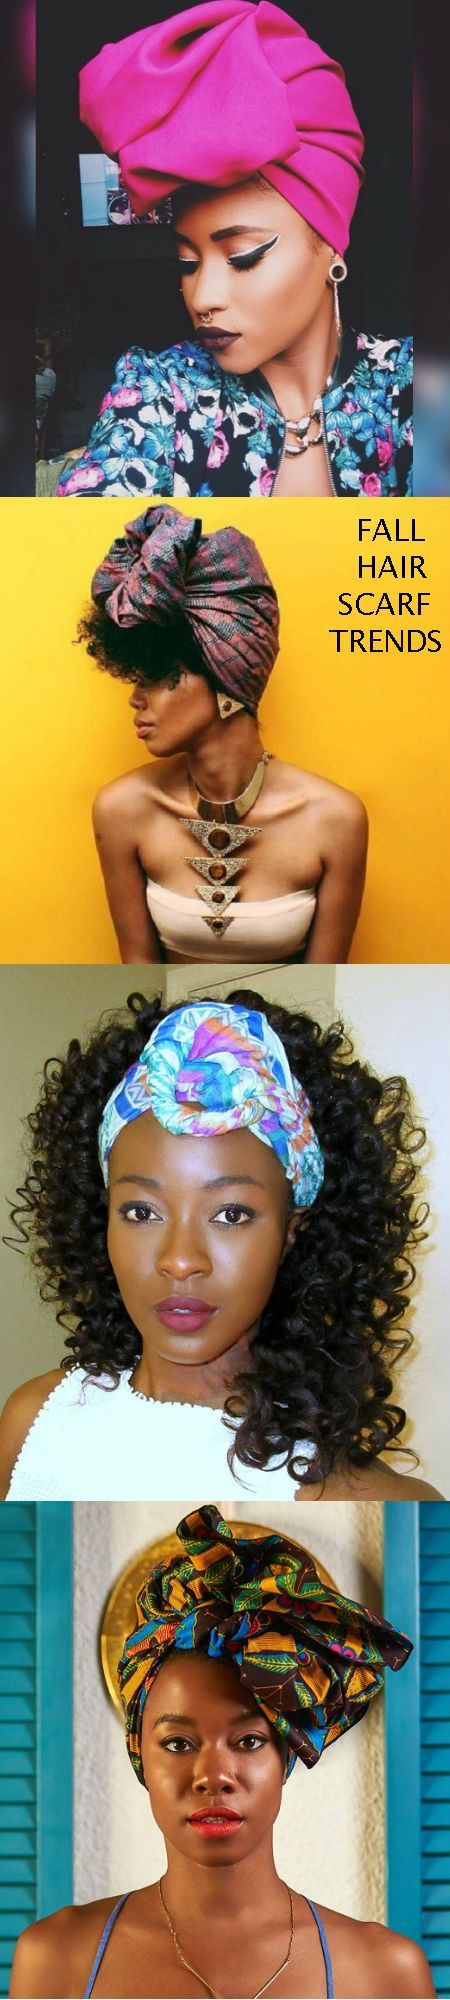 best hair designs images on pinterest turbans head scarfs and